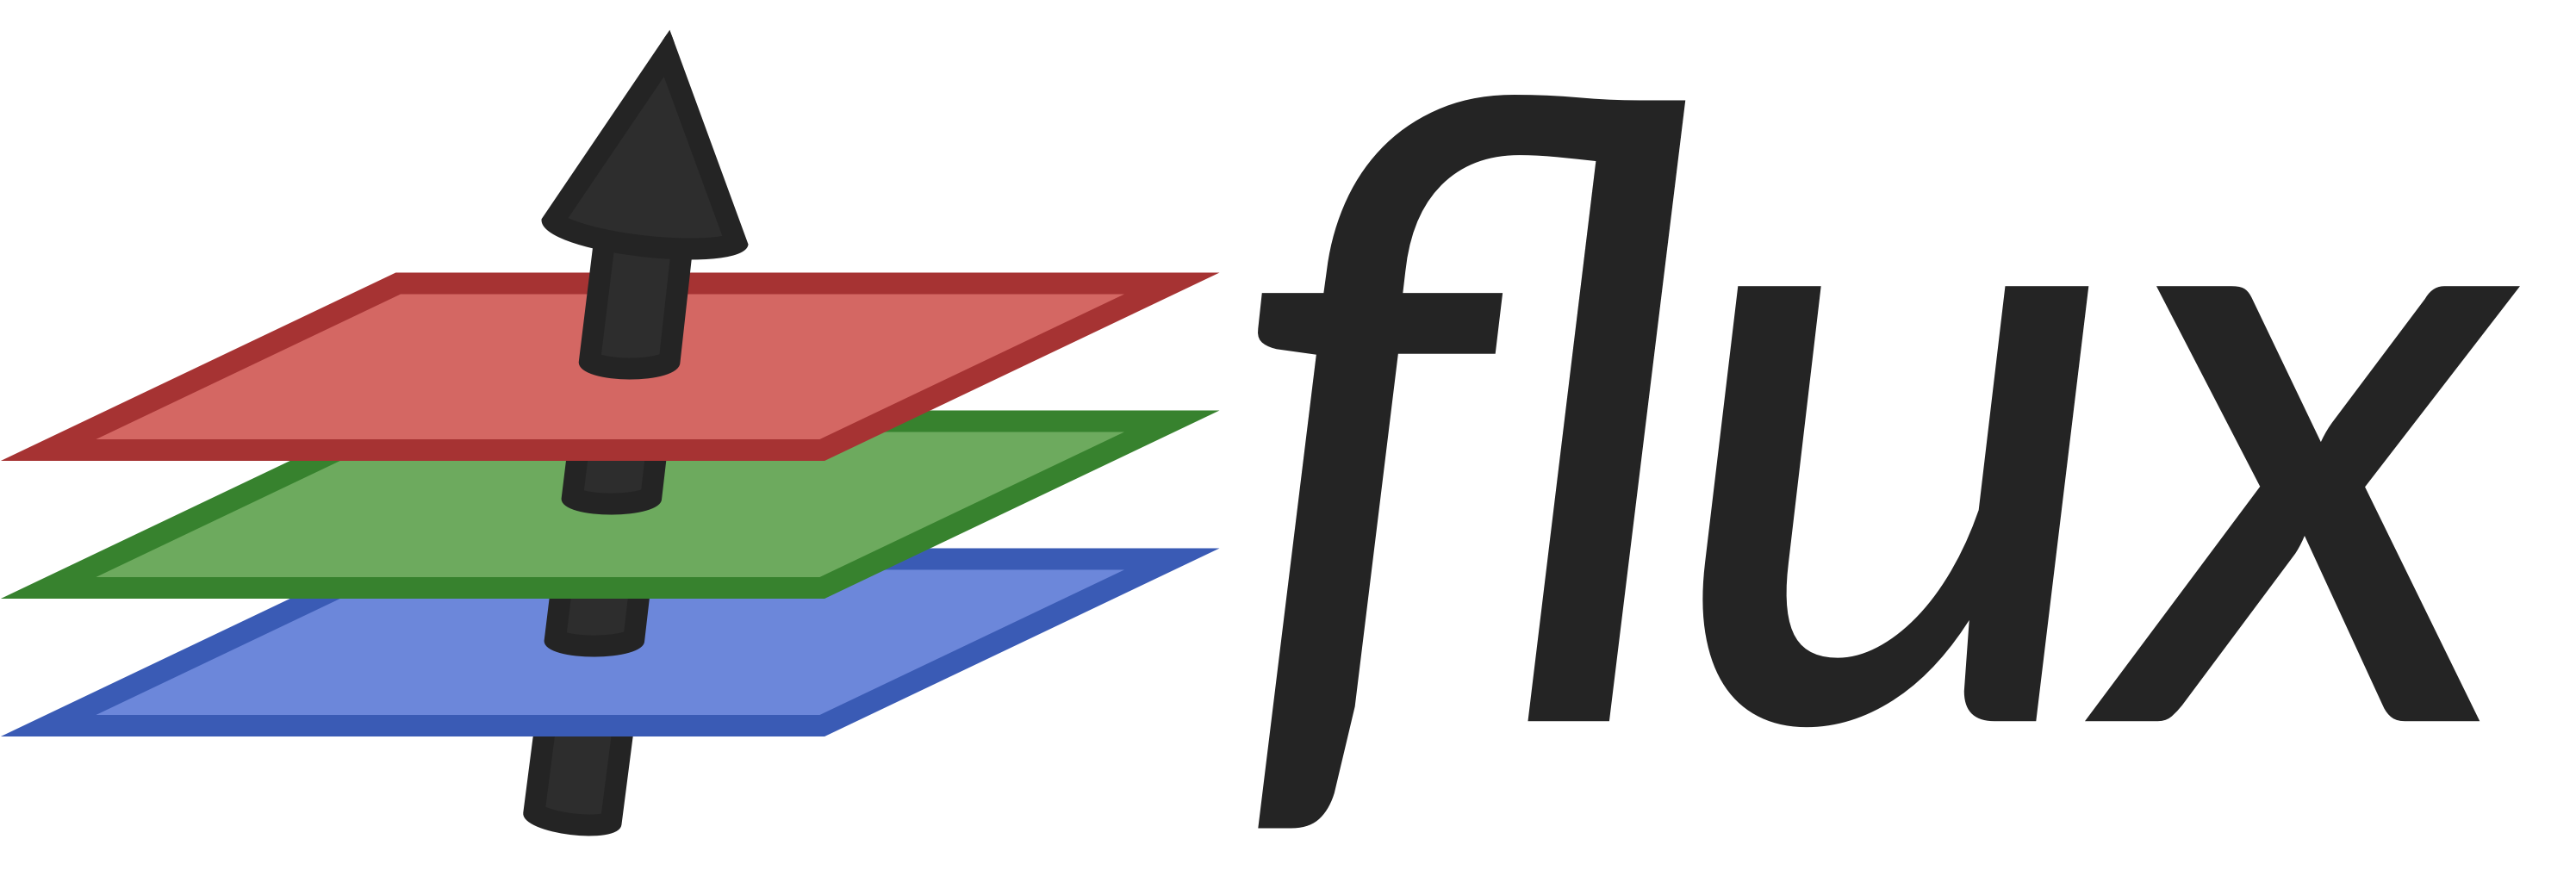 GitHub - FluxML/Flux jl: Relax! Flux is the ML library that